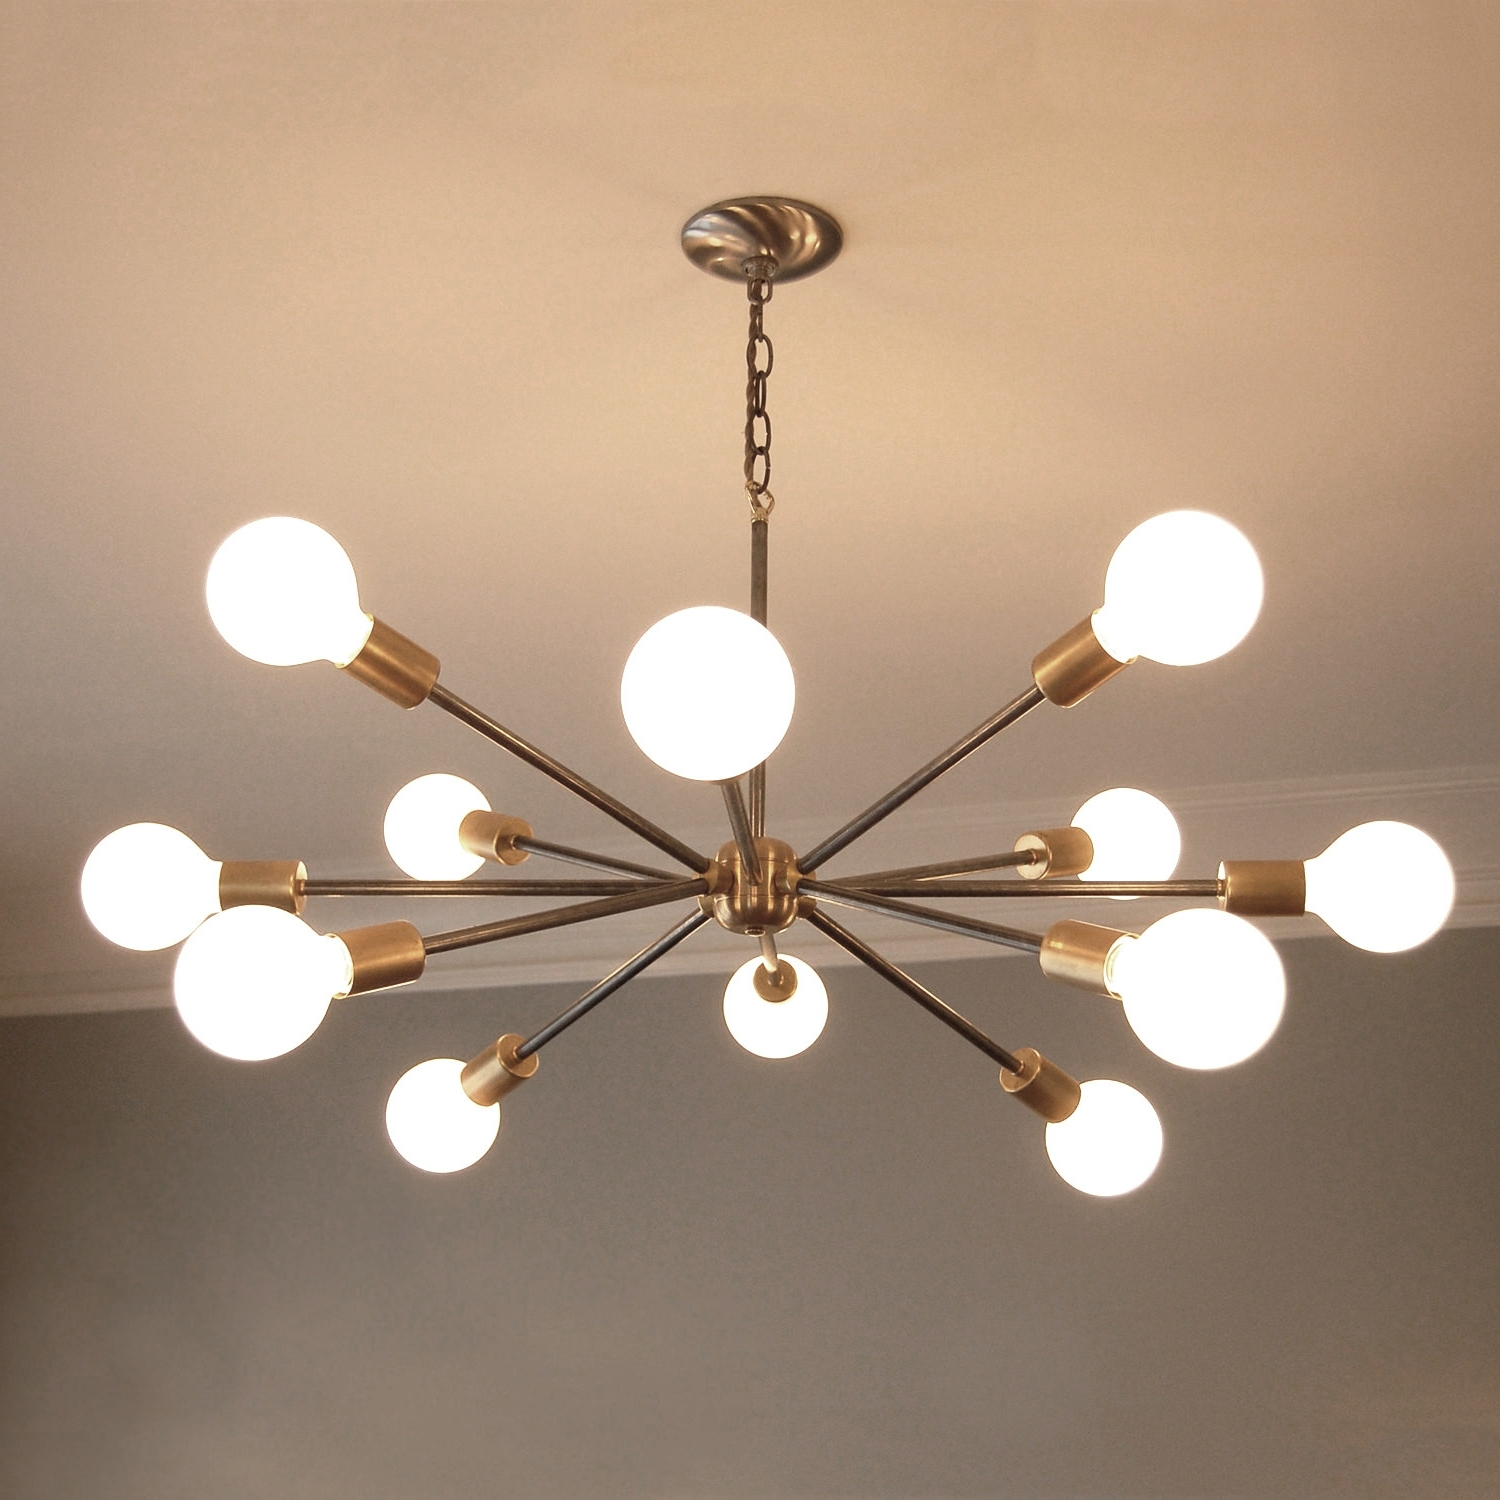 Recent Modern Chandeliers Throughout Creative Mid Century Modern Chandeliers On Home Interior Remodel (View 10 of 20)